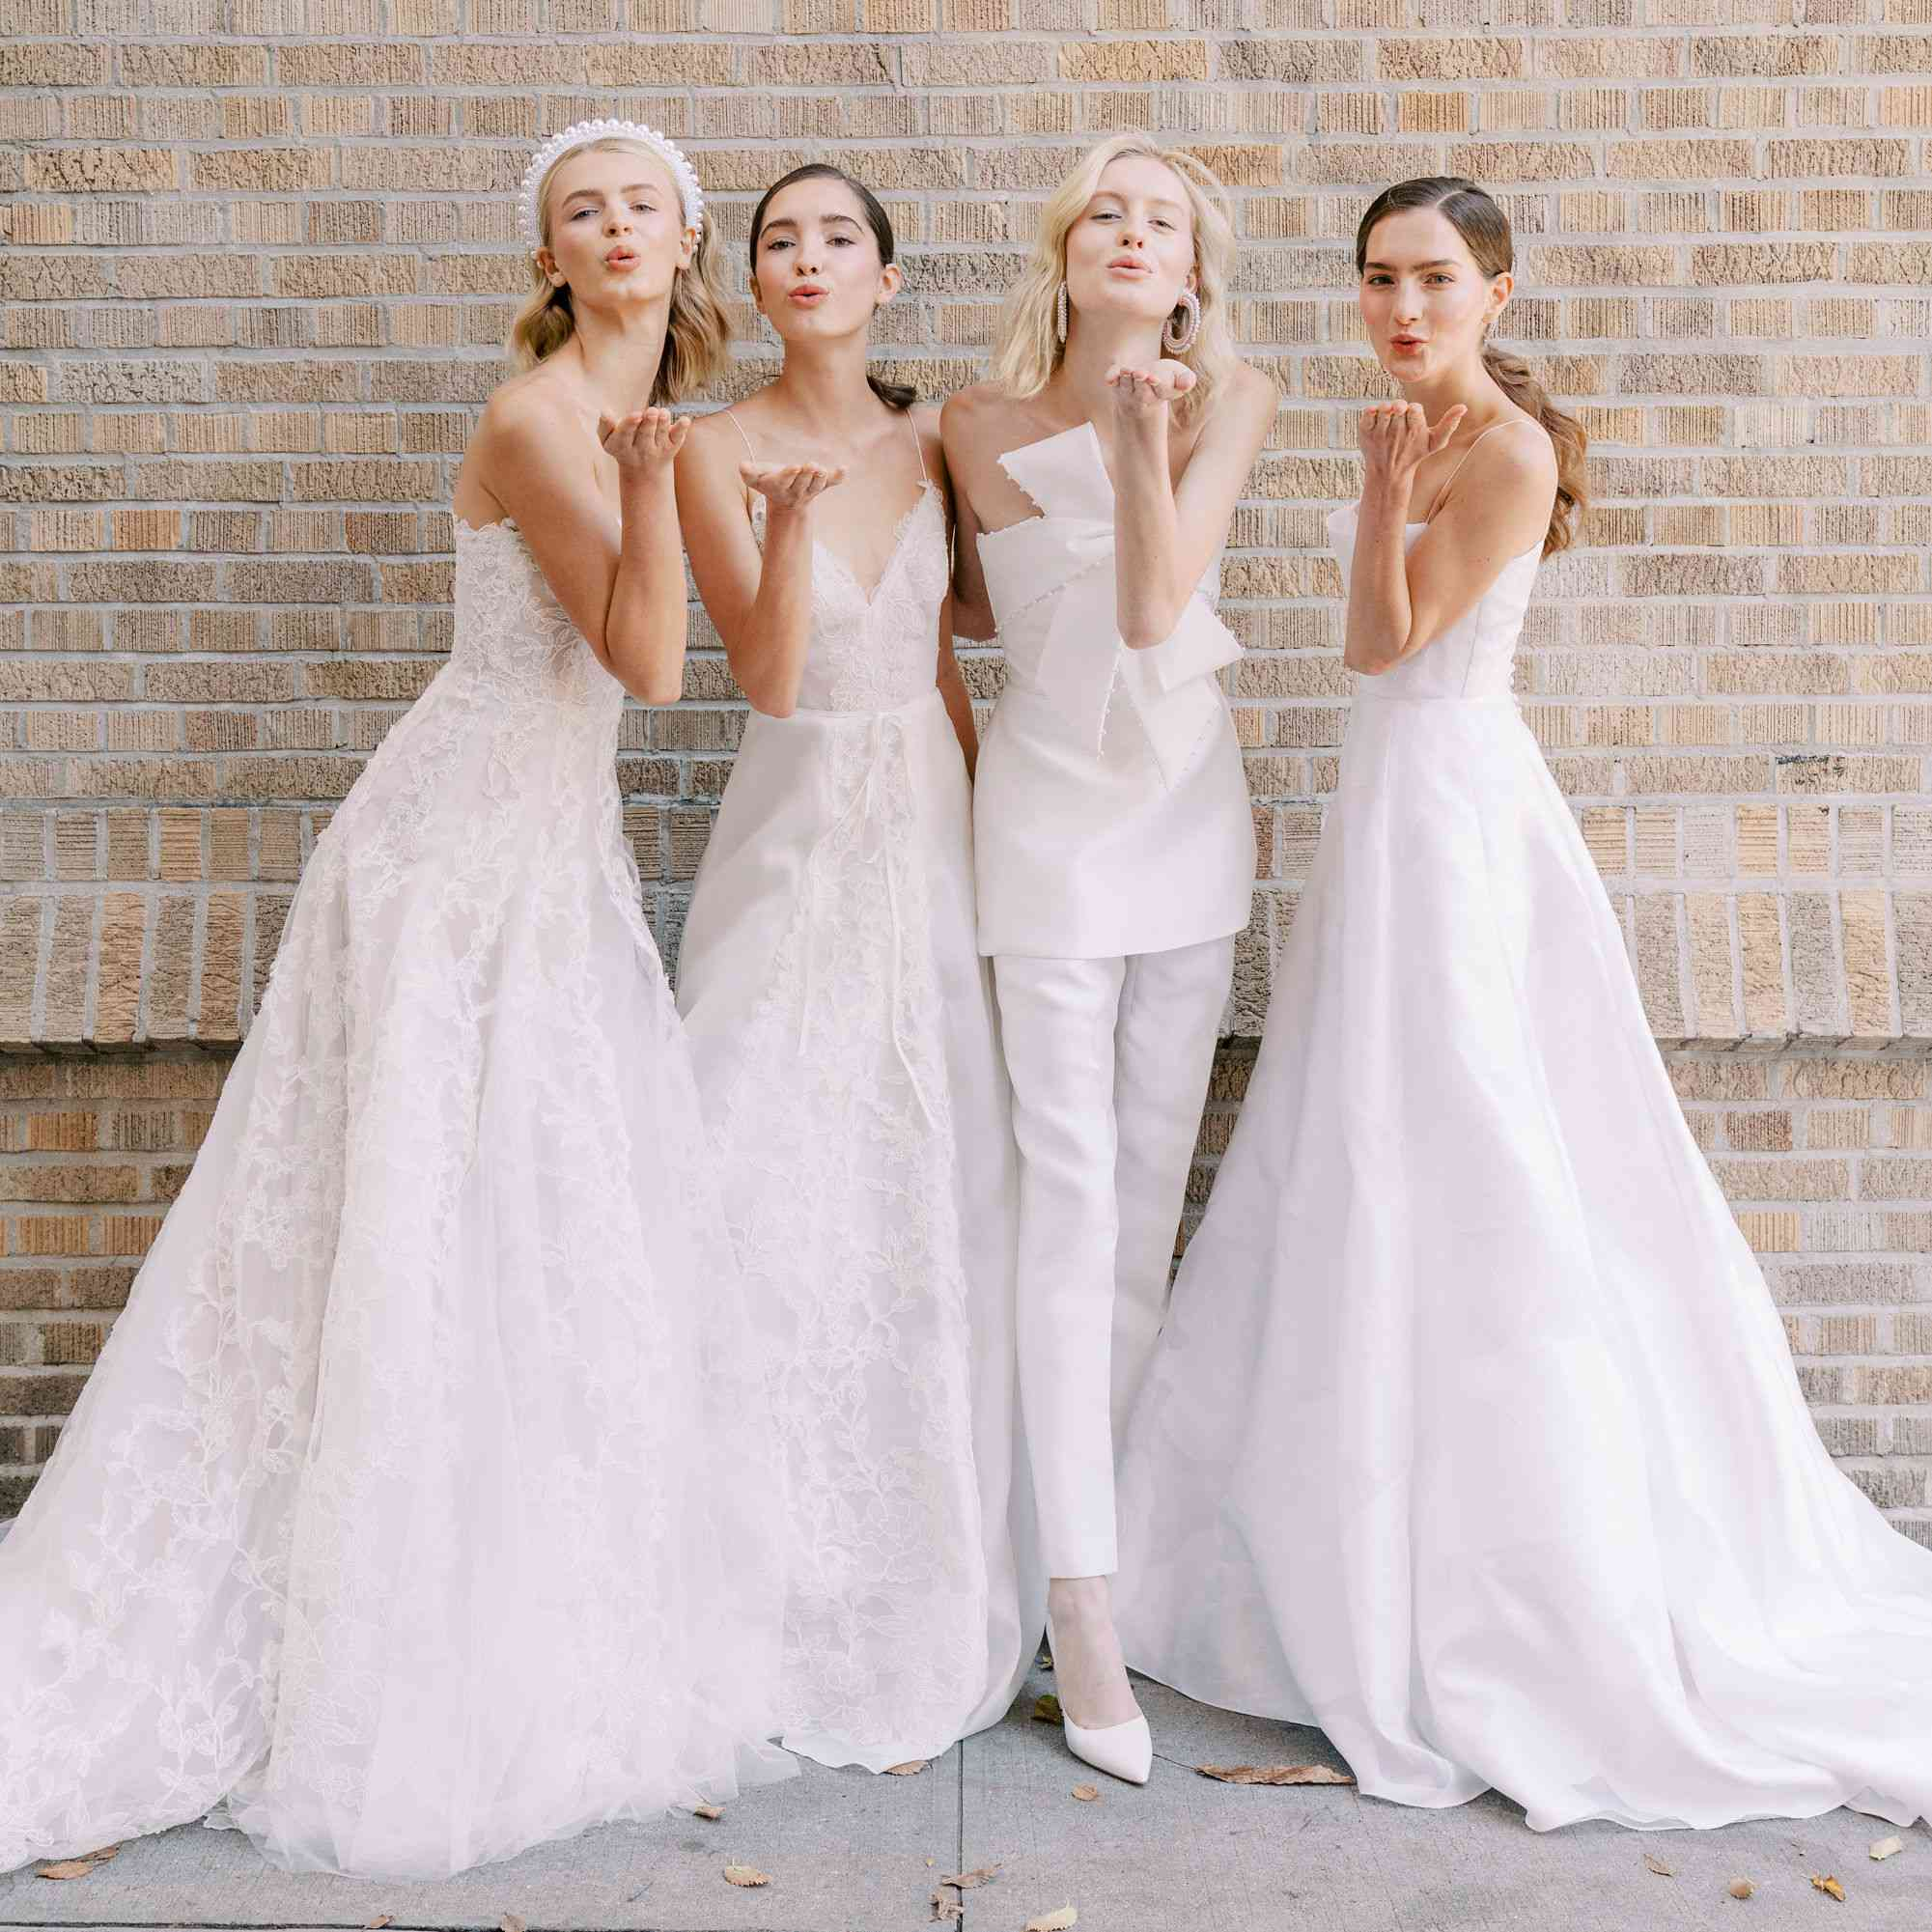 2020 Wedding Dress Trends.These Are The Wedding Dress Trends Our Editors Love For Fall